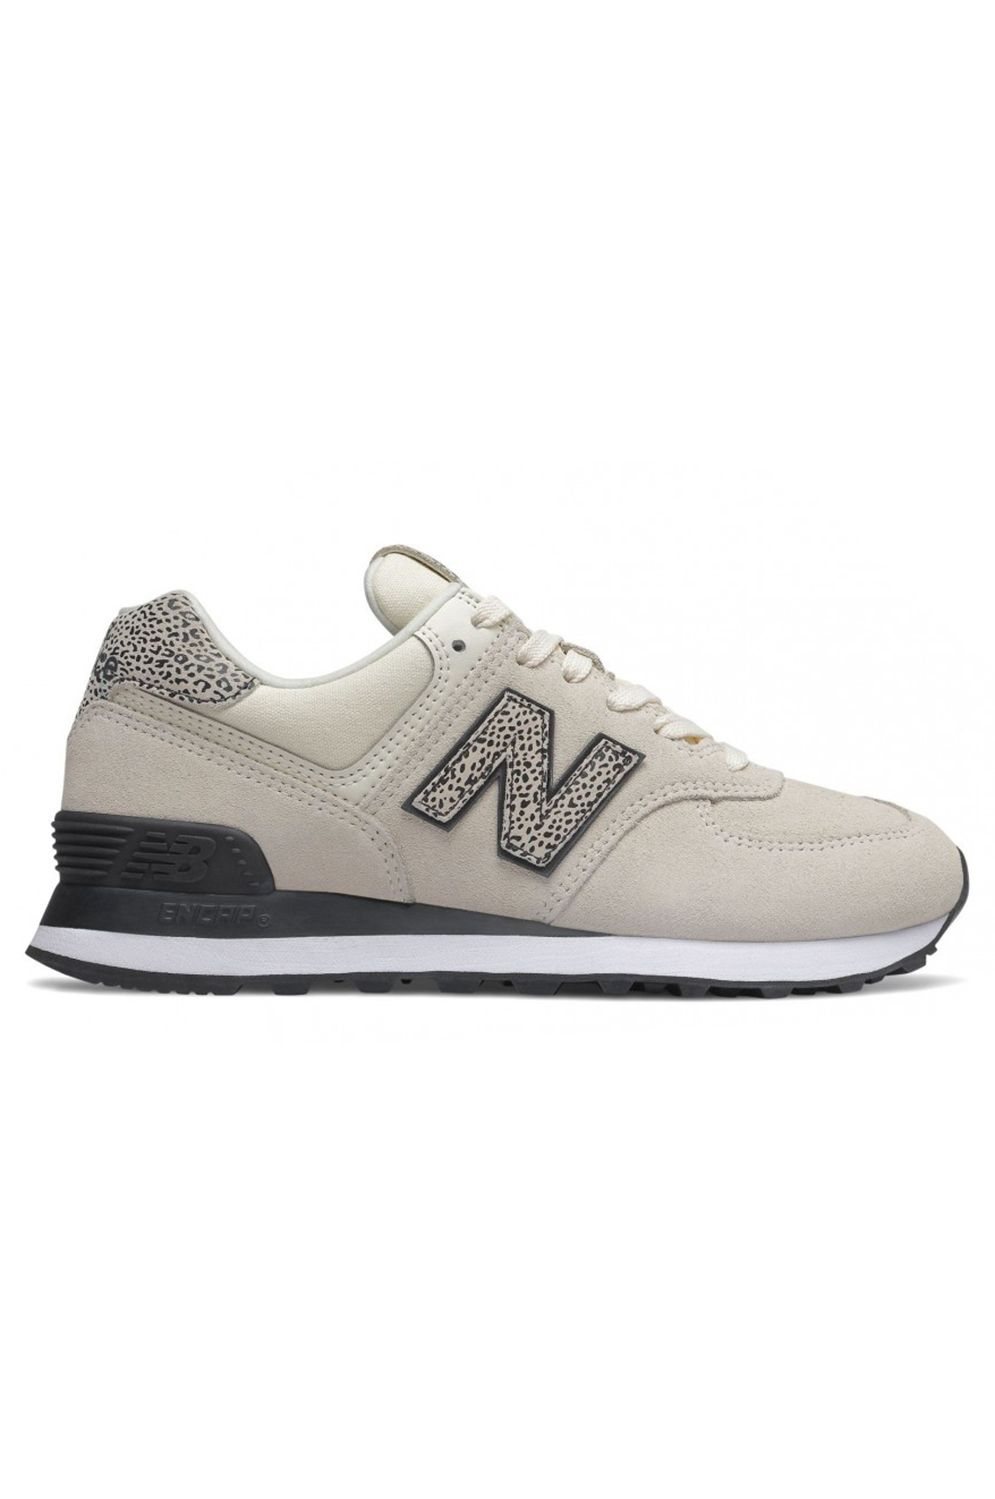 New Balance Shoes CLASSIC RUNNING 574V2 Off White